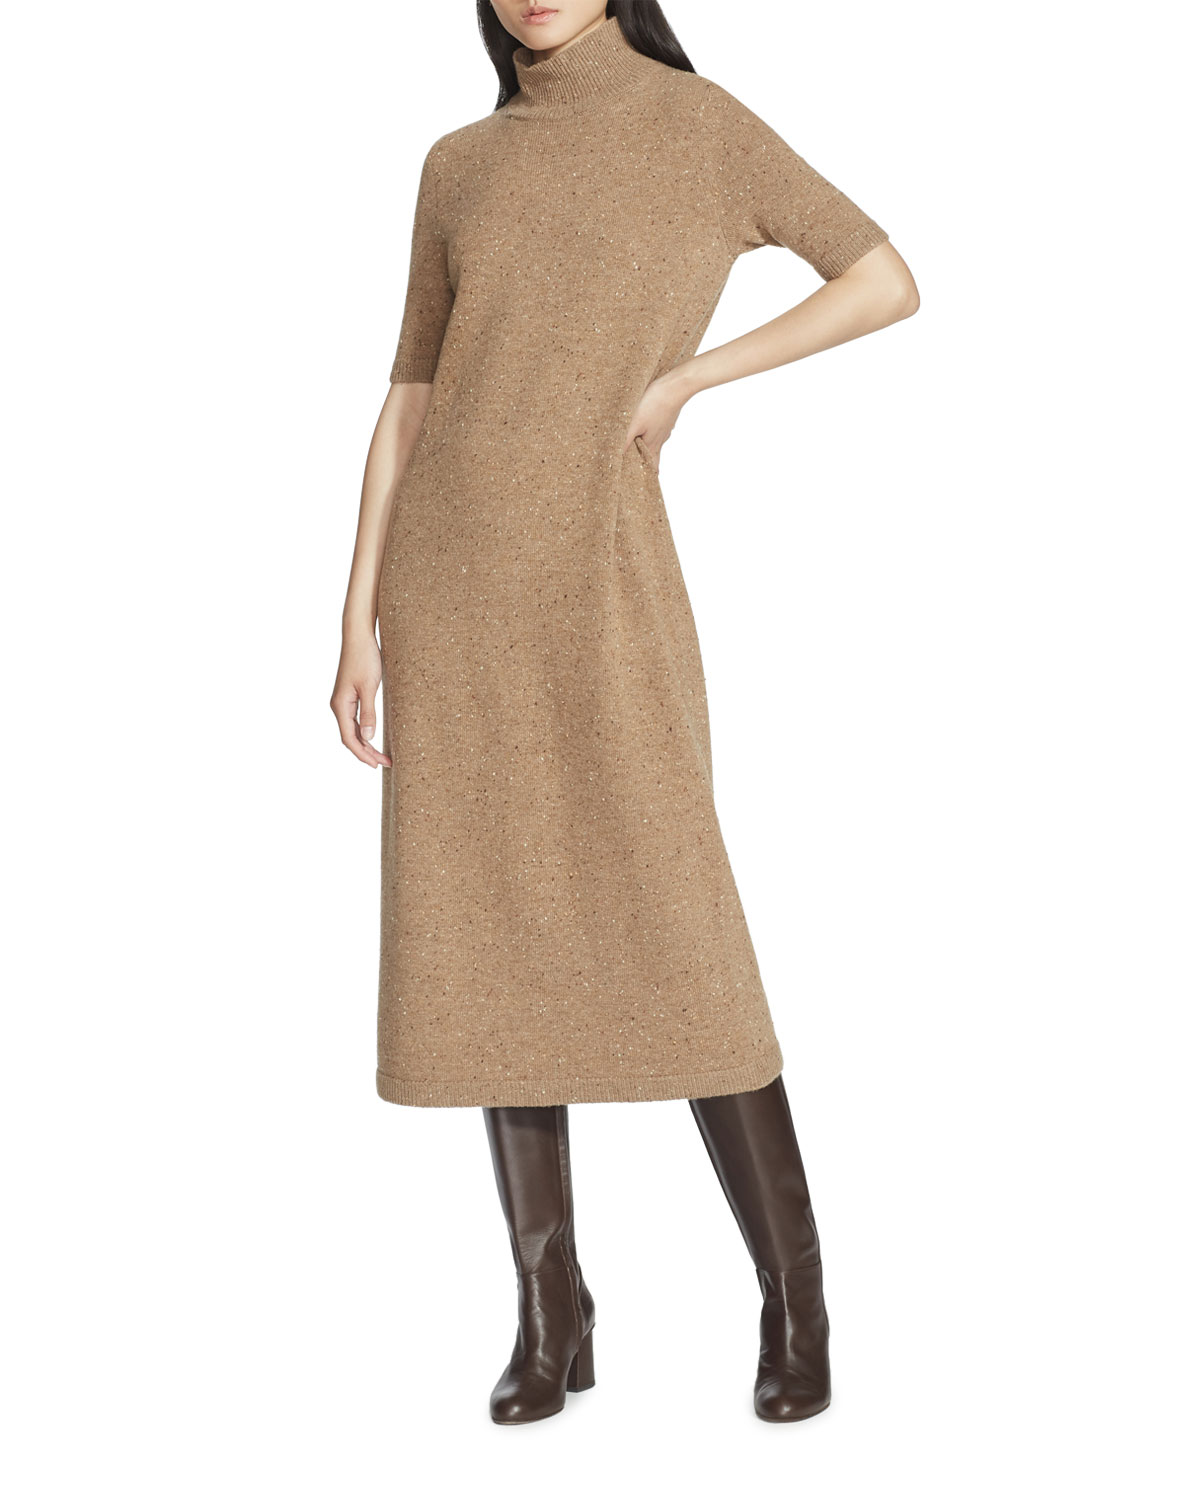 Lafayette 148 Dresses DONEGAL WOOL STAND-COLLAR SWEATERDRESS